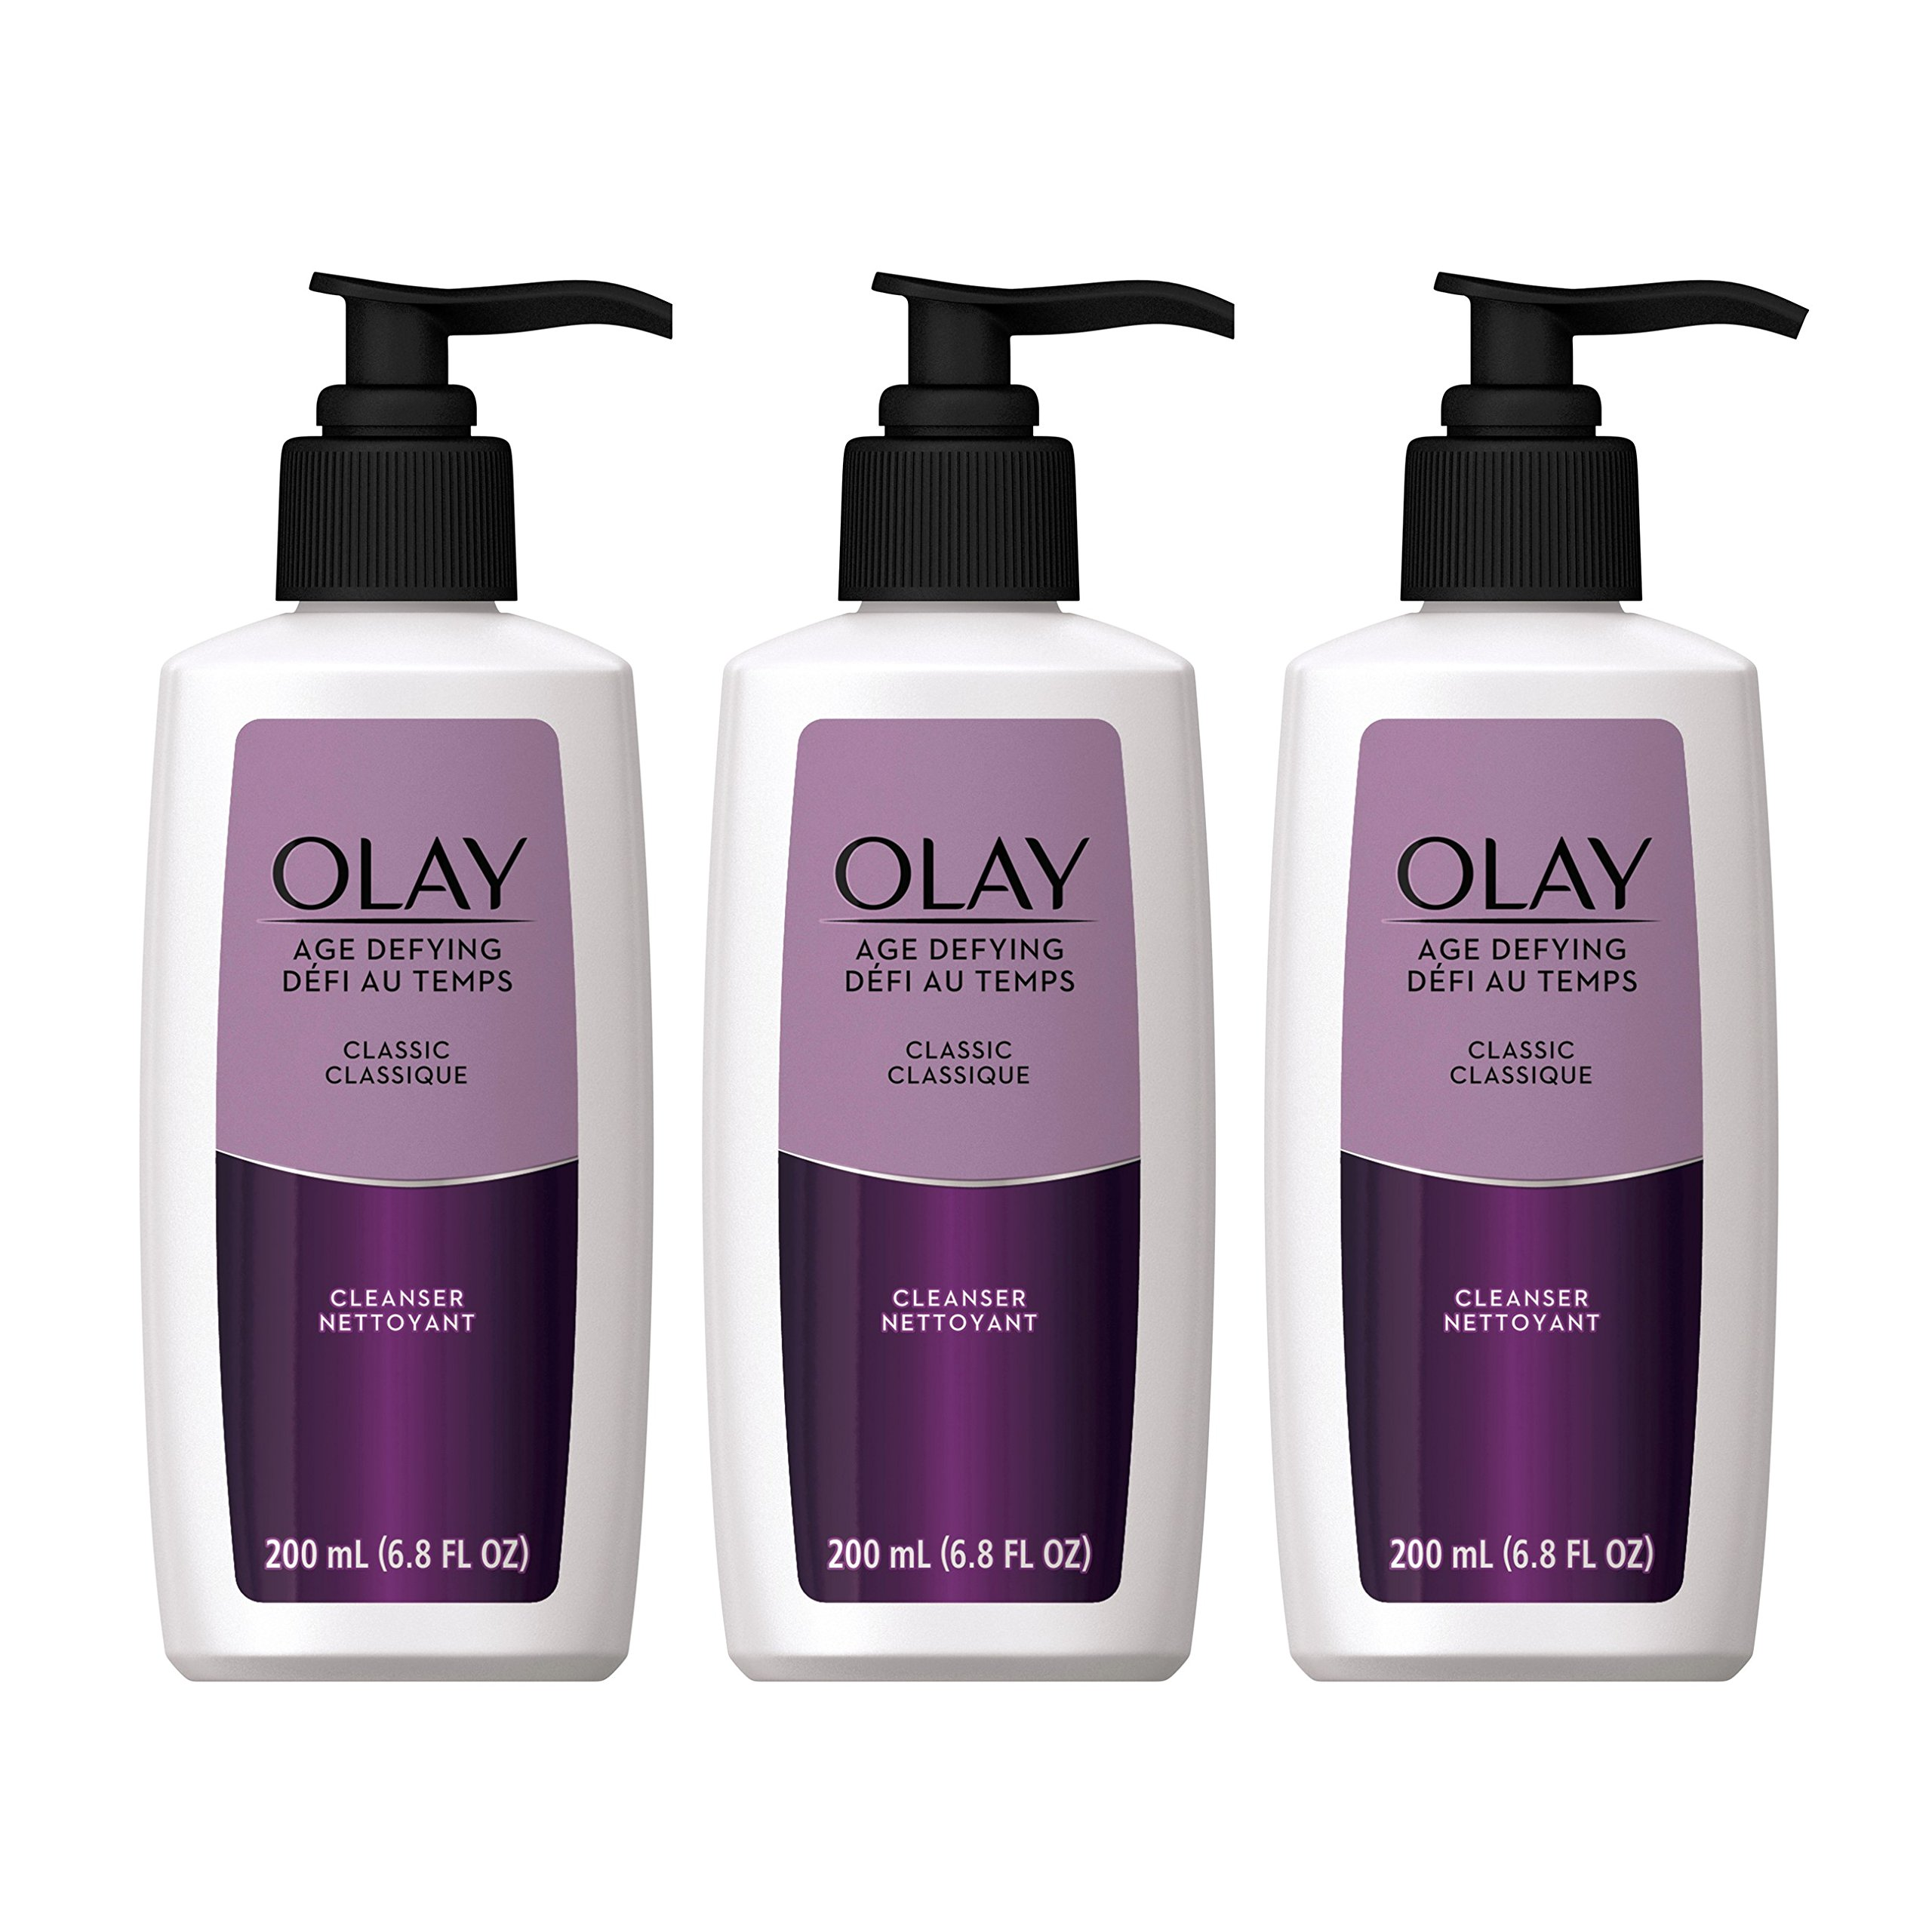 Olay Age Defying Classic Facial Cleanser 6.8 Fl Oz (Pack of 3)